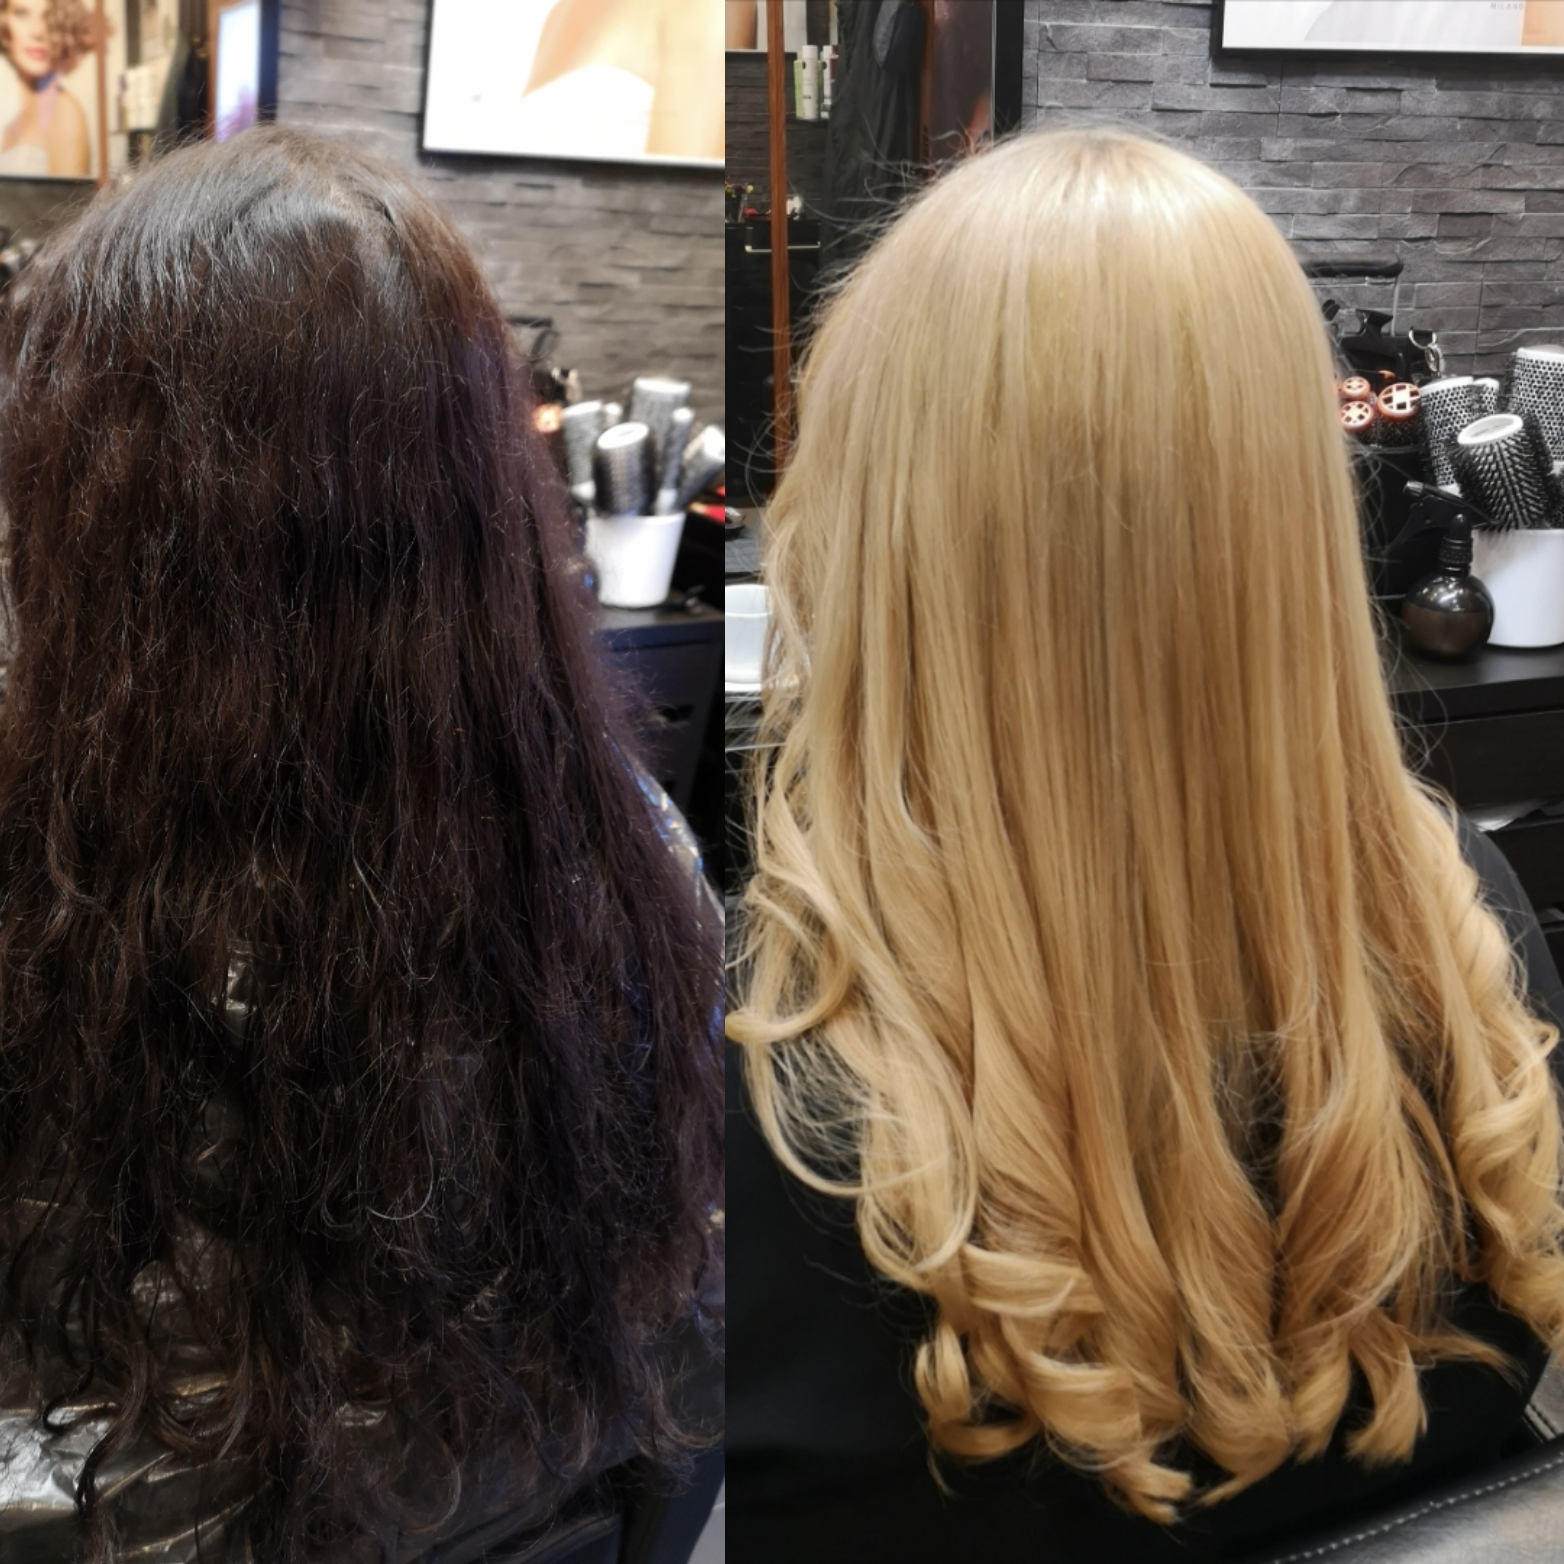 niloufar coiffeuse .transformation